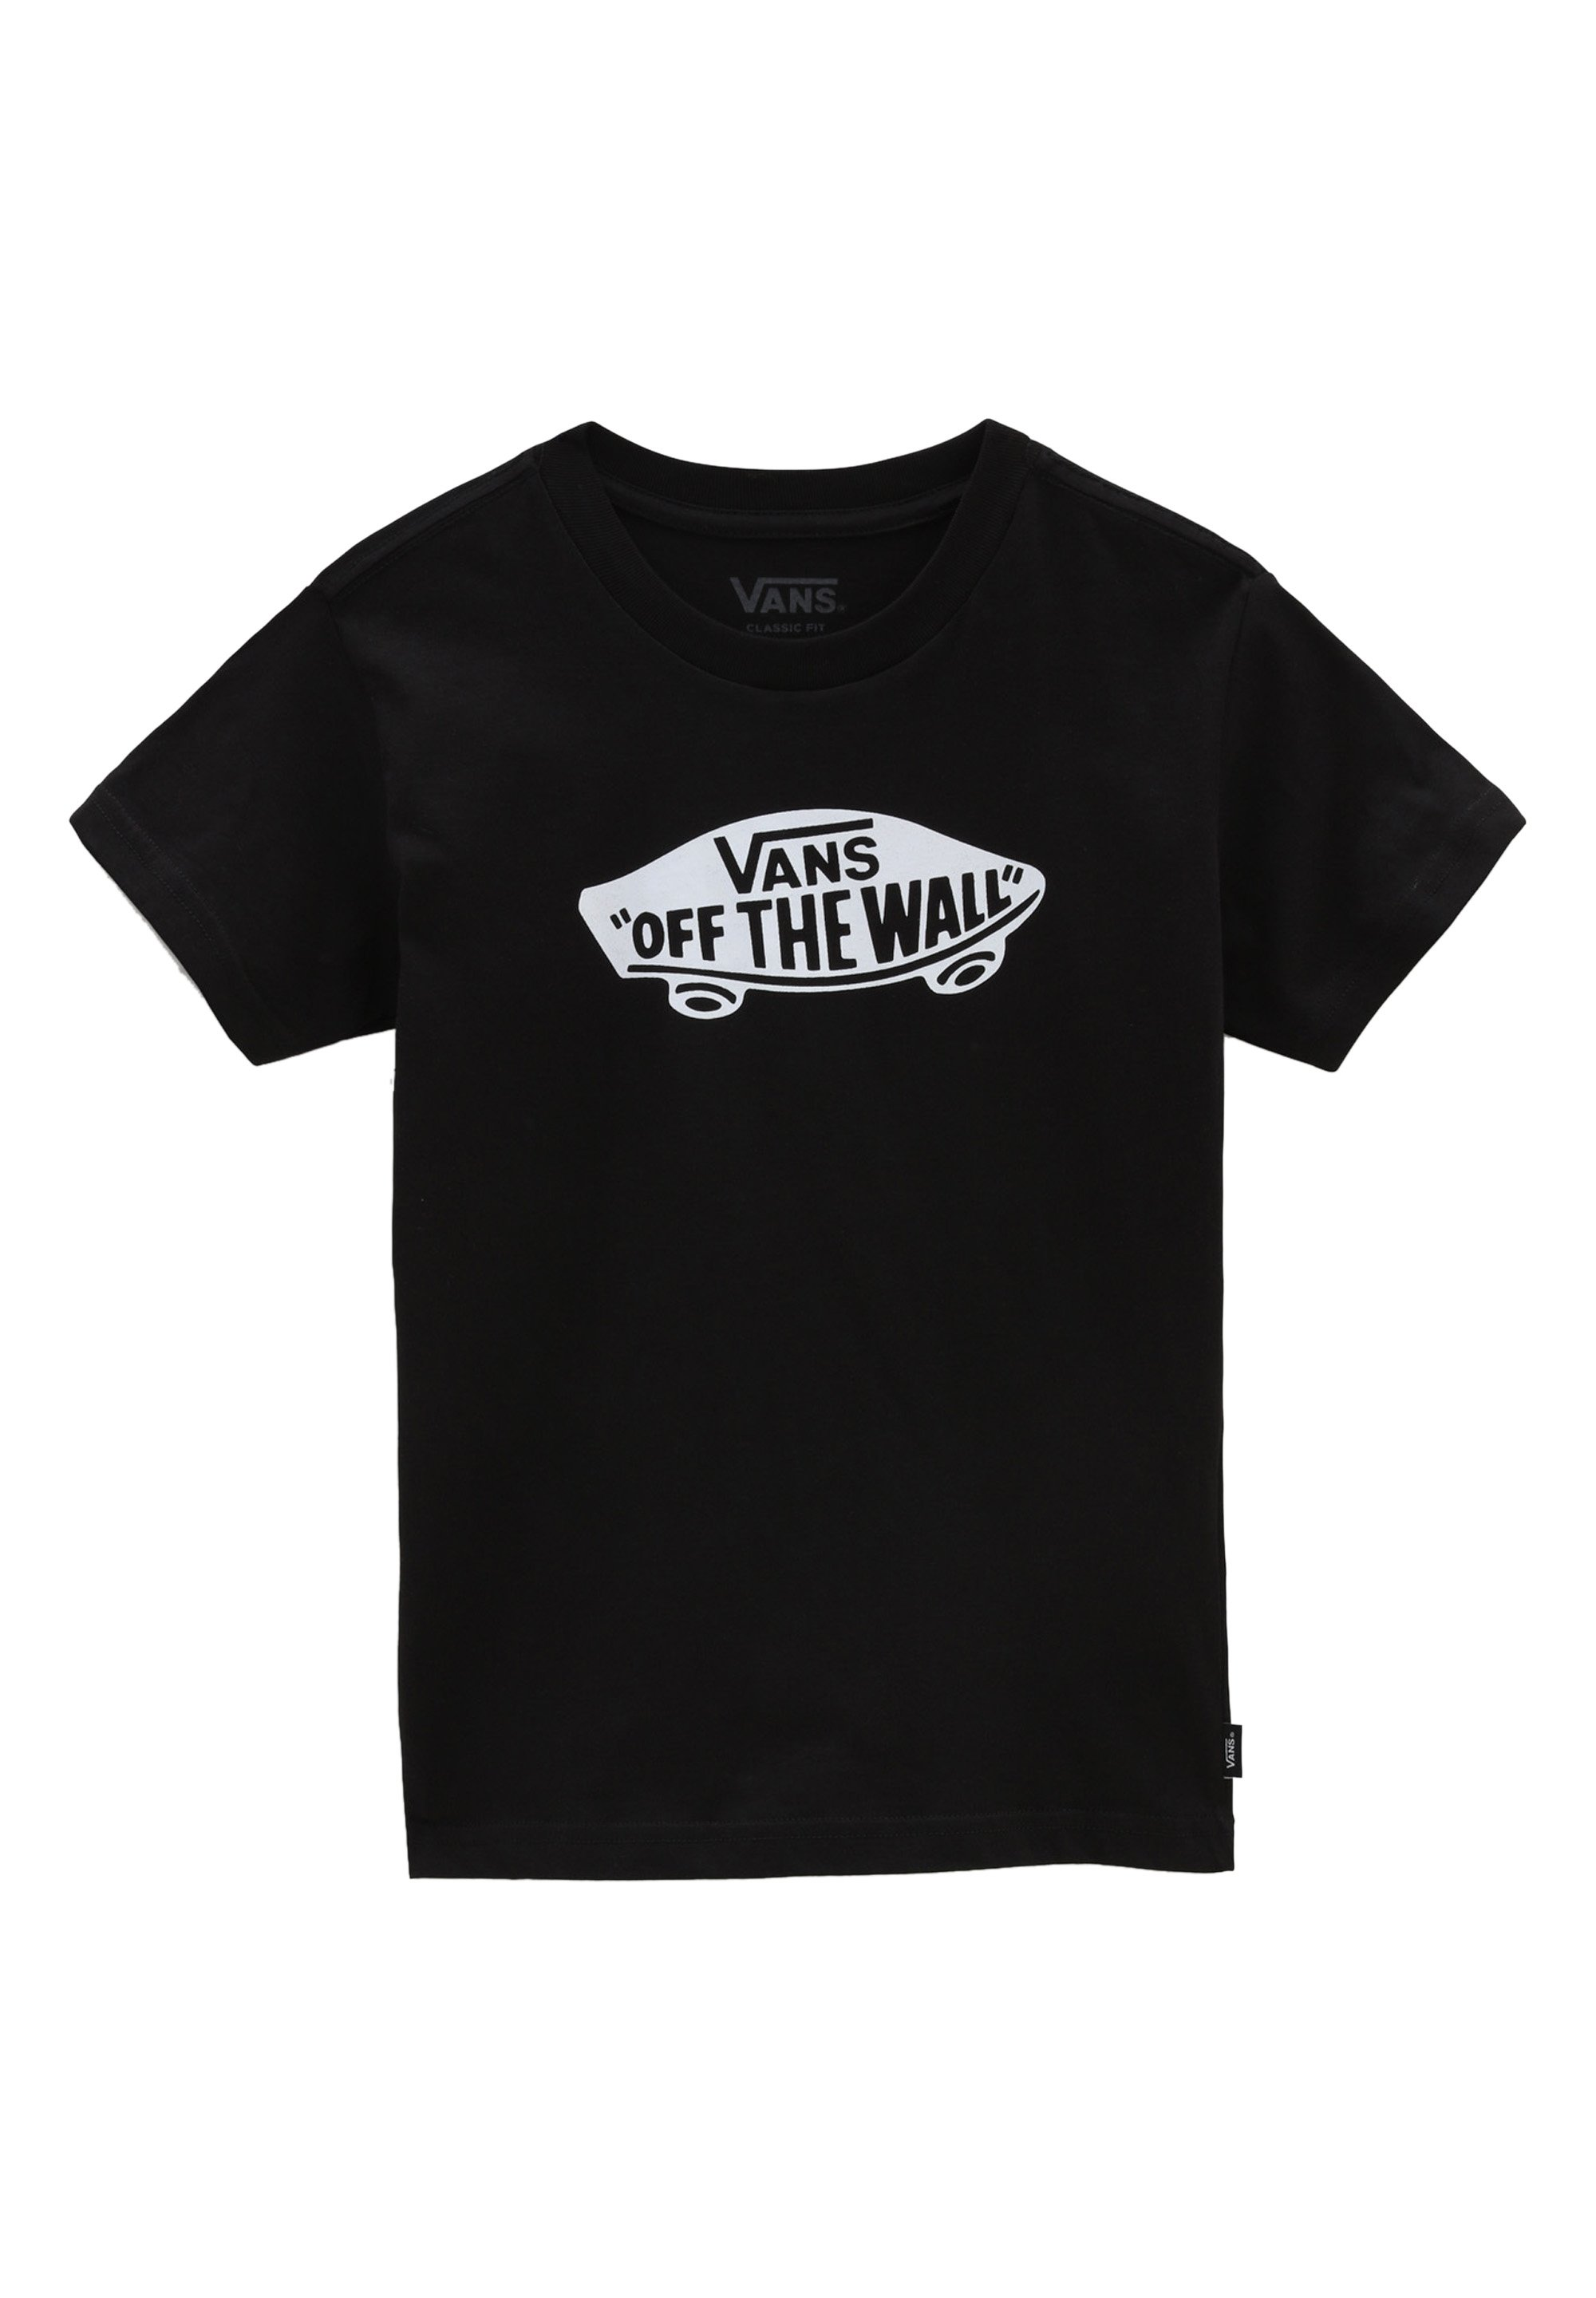 Bambini BY VANS OTW KIDS - T-shirt con stampa